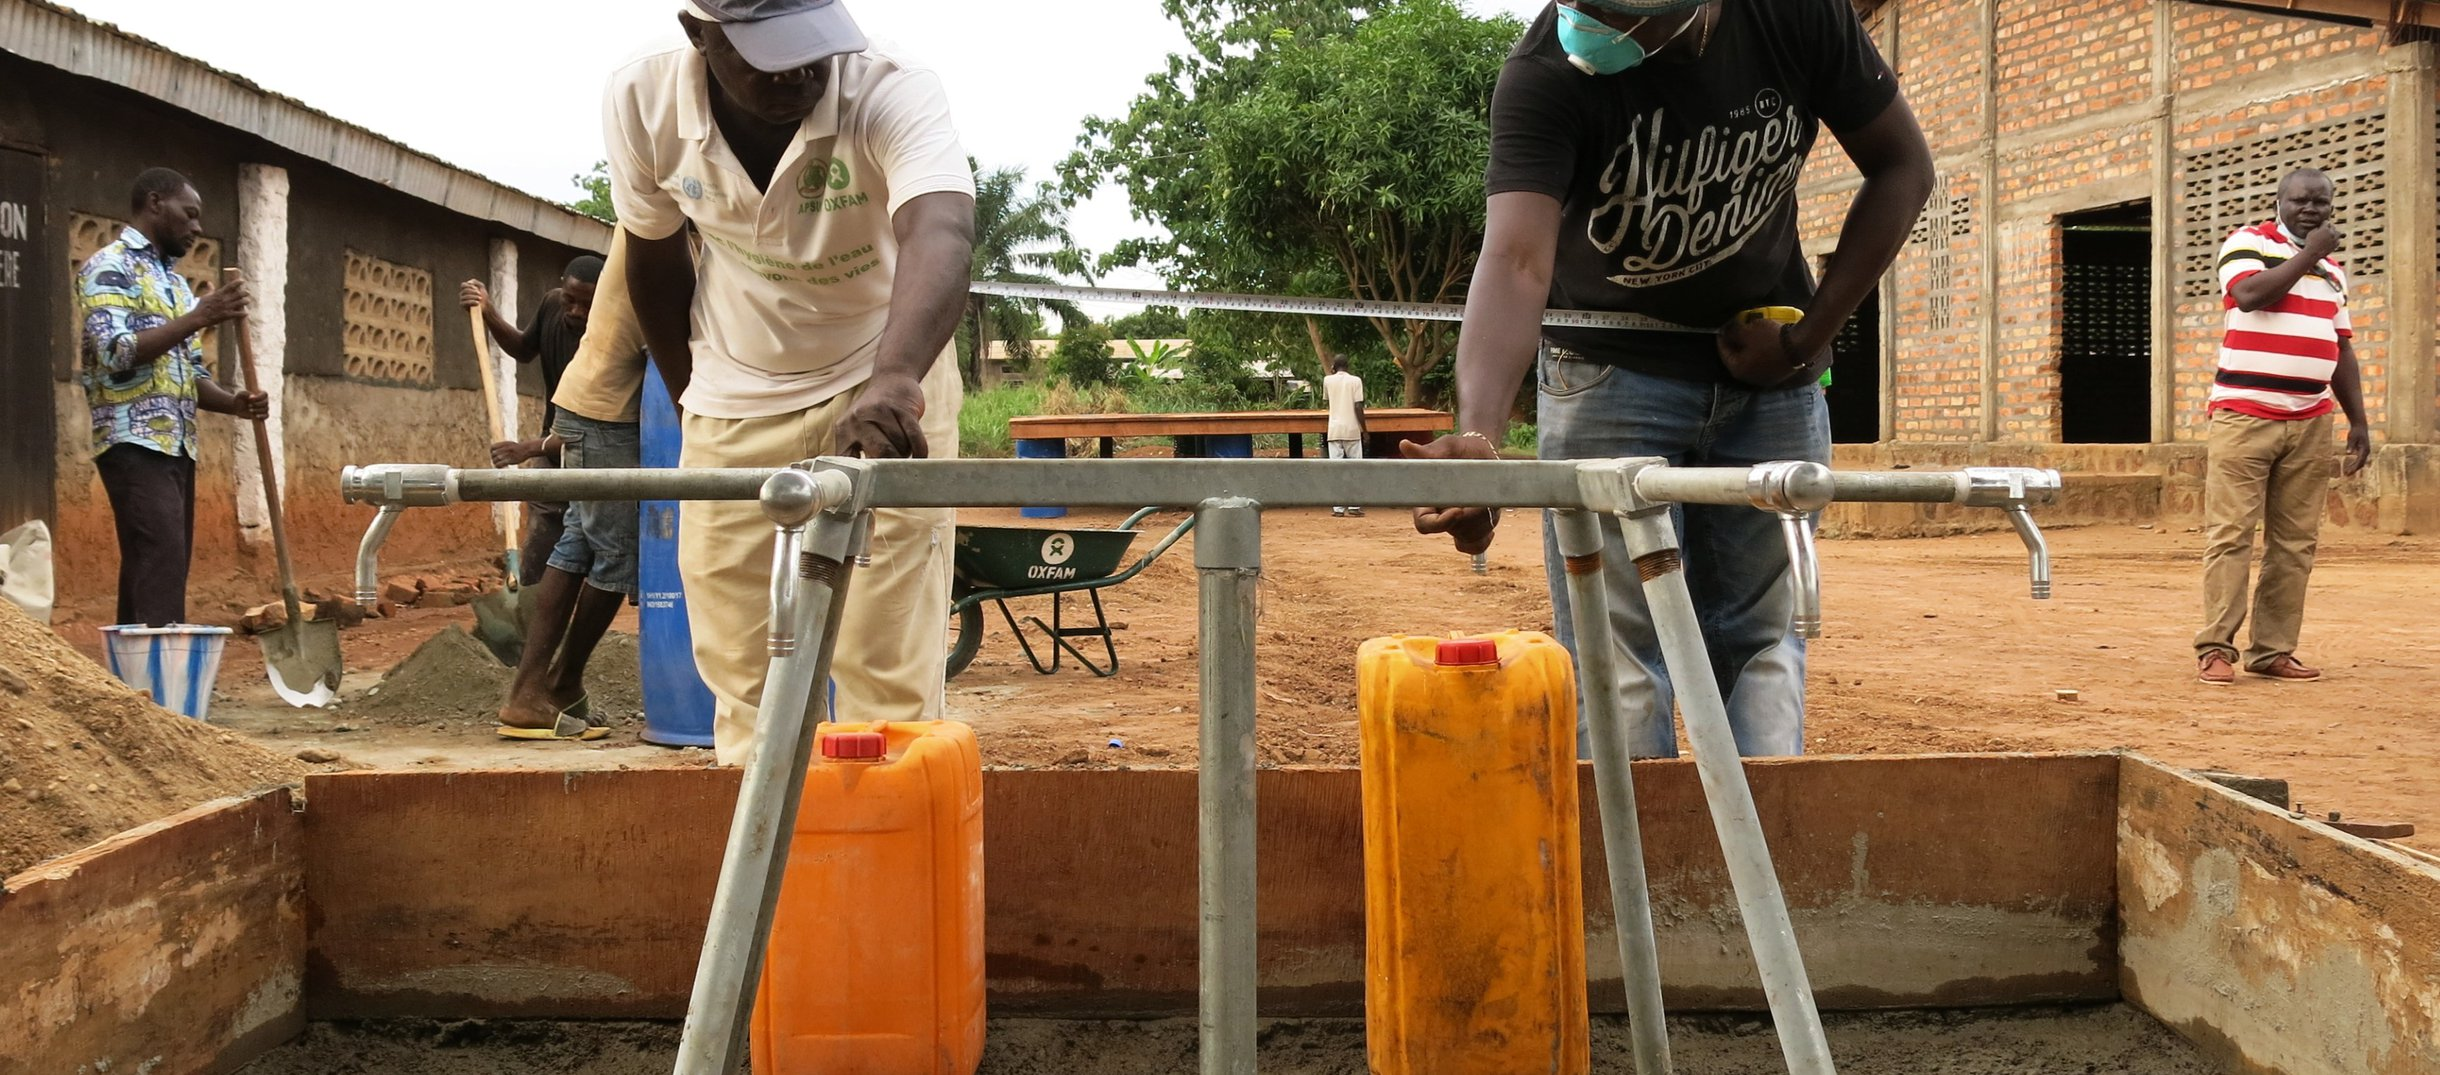 OGB_121327_Setting up water points, Central African Republic - Covid-19 response (1).jpg